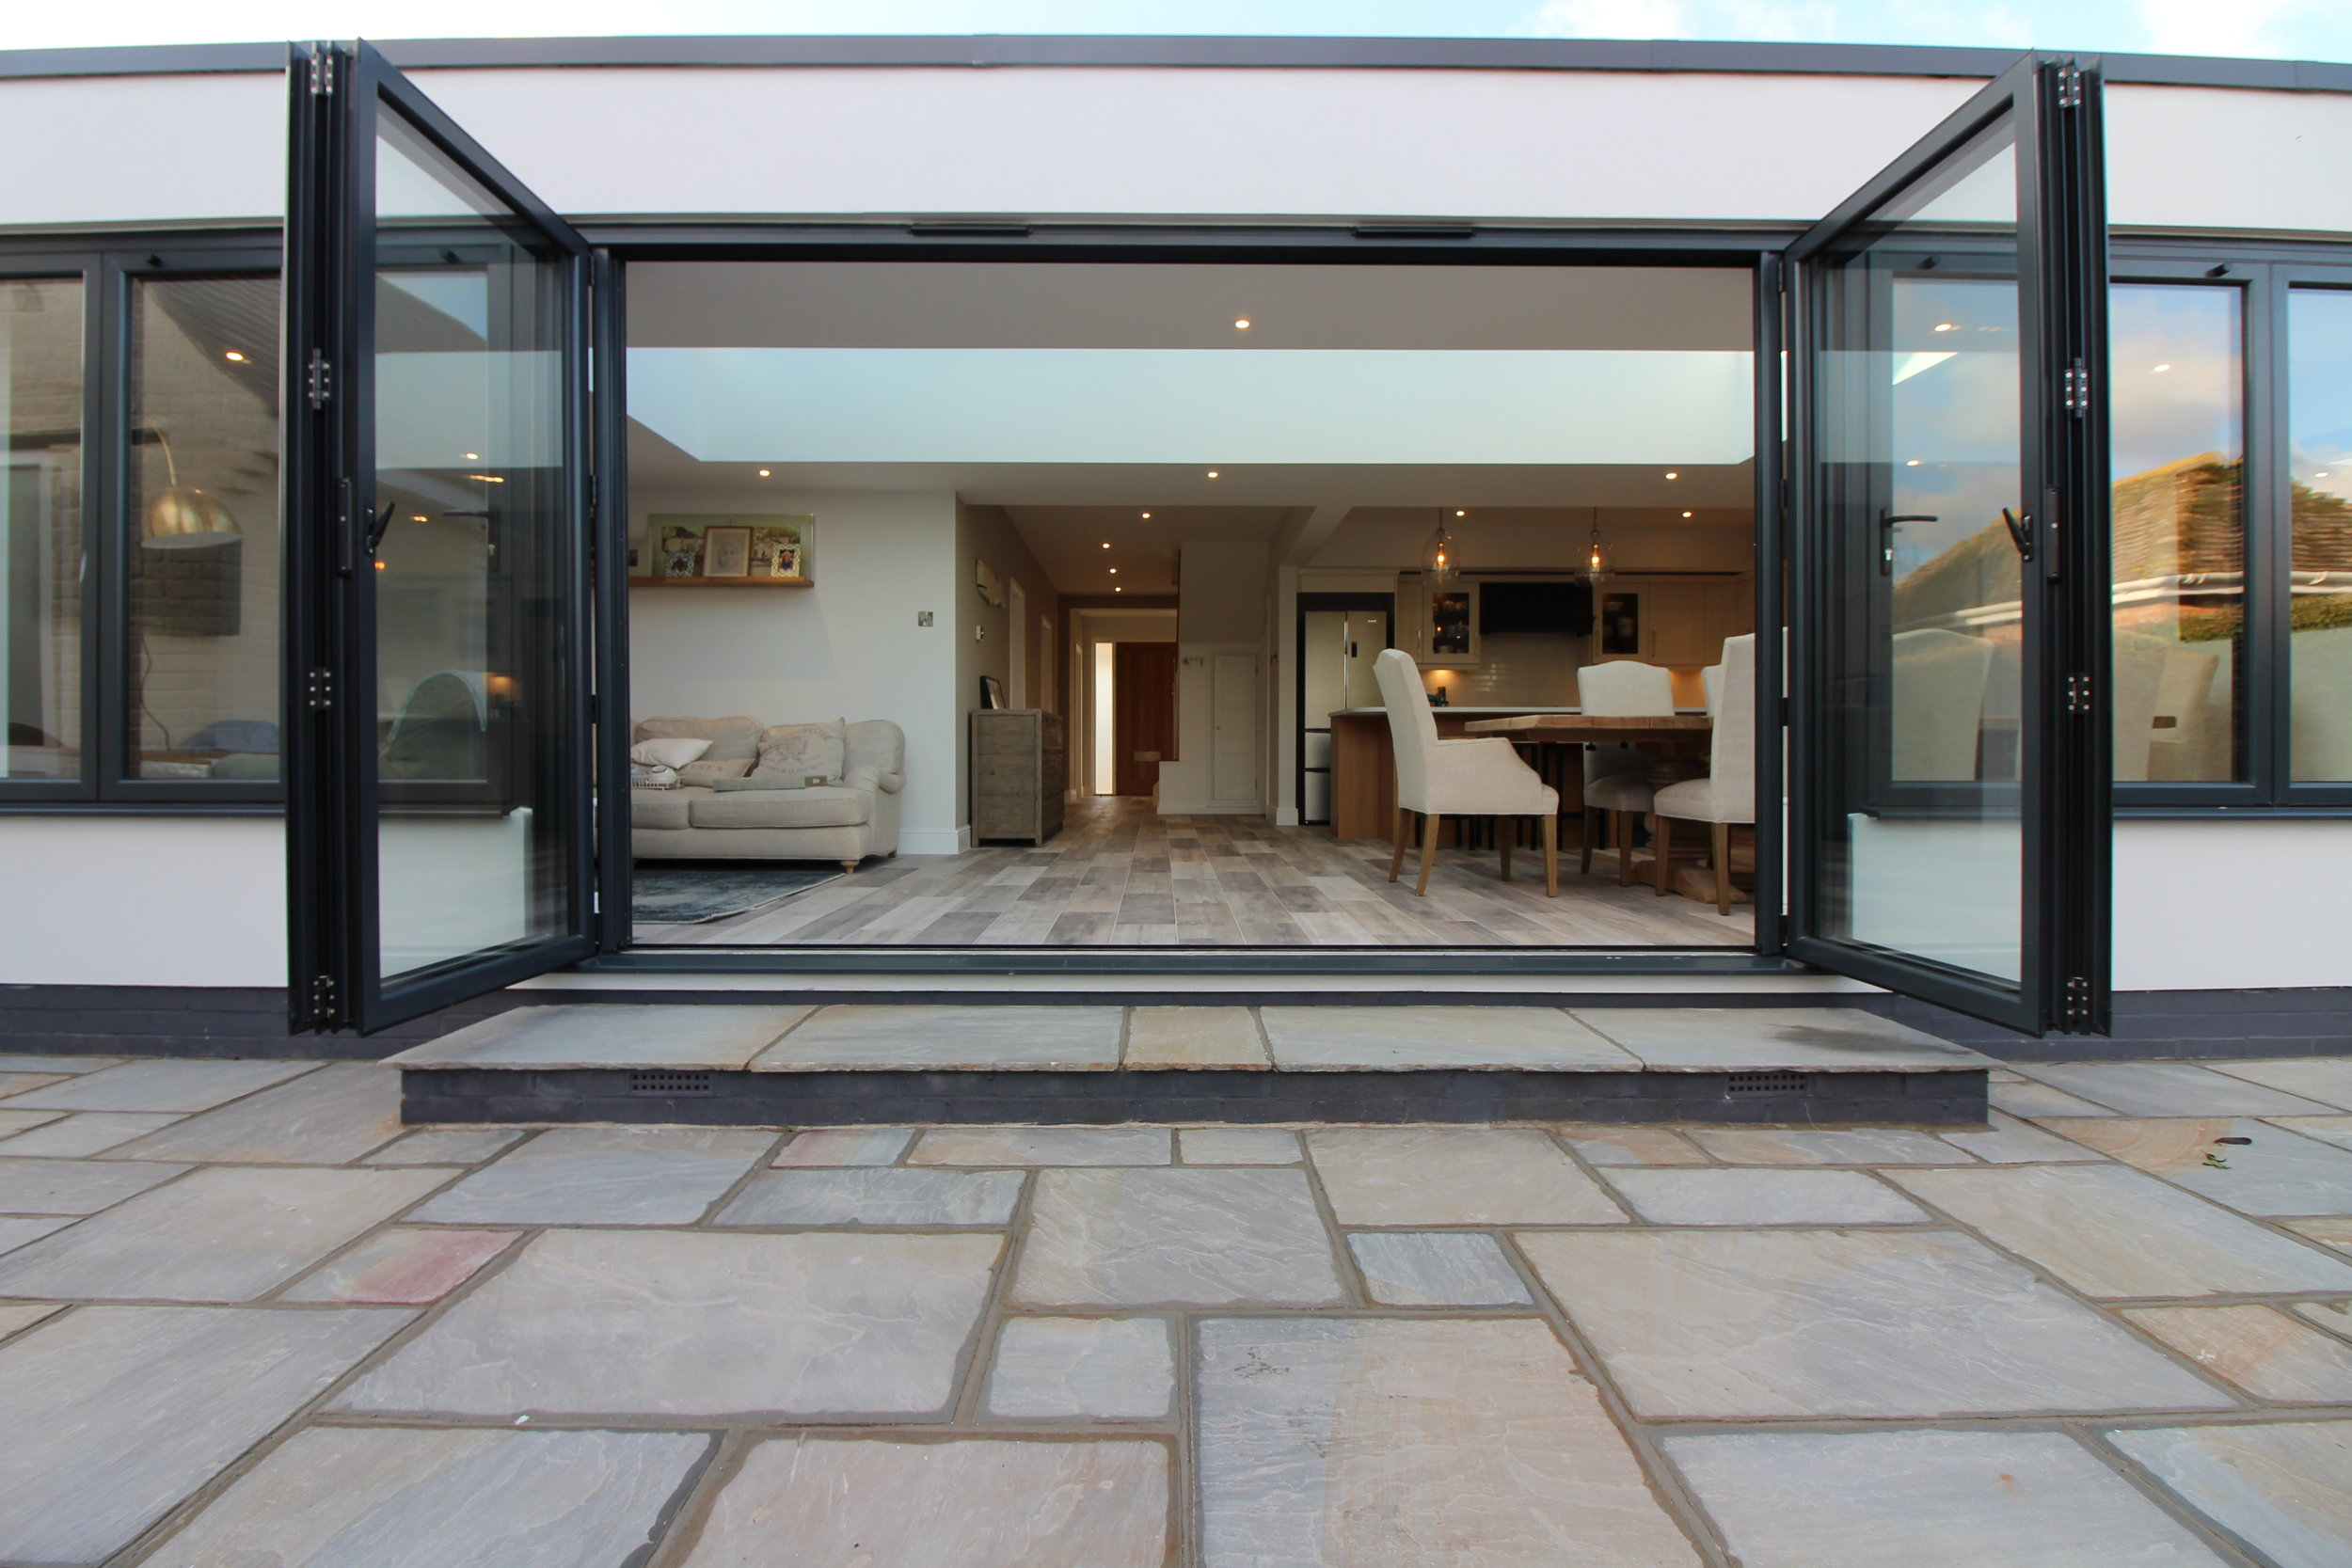 Bifold windows and doors were added to the rear extension to maximum natural light. Perfect to enjoy the warmer summer months and welcome the gentle sea breeze into your home.